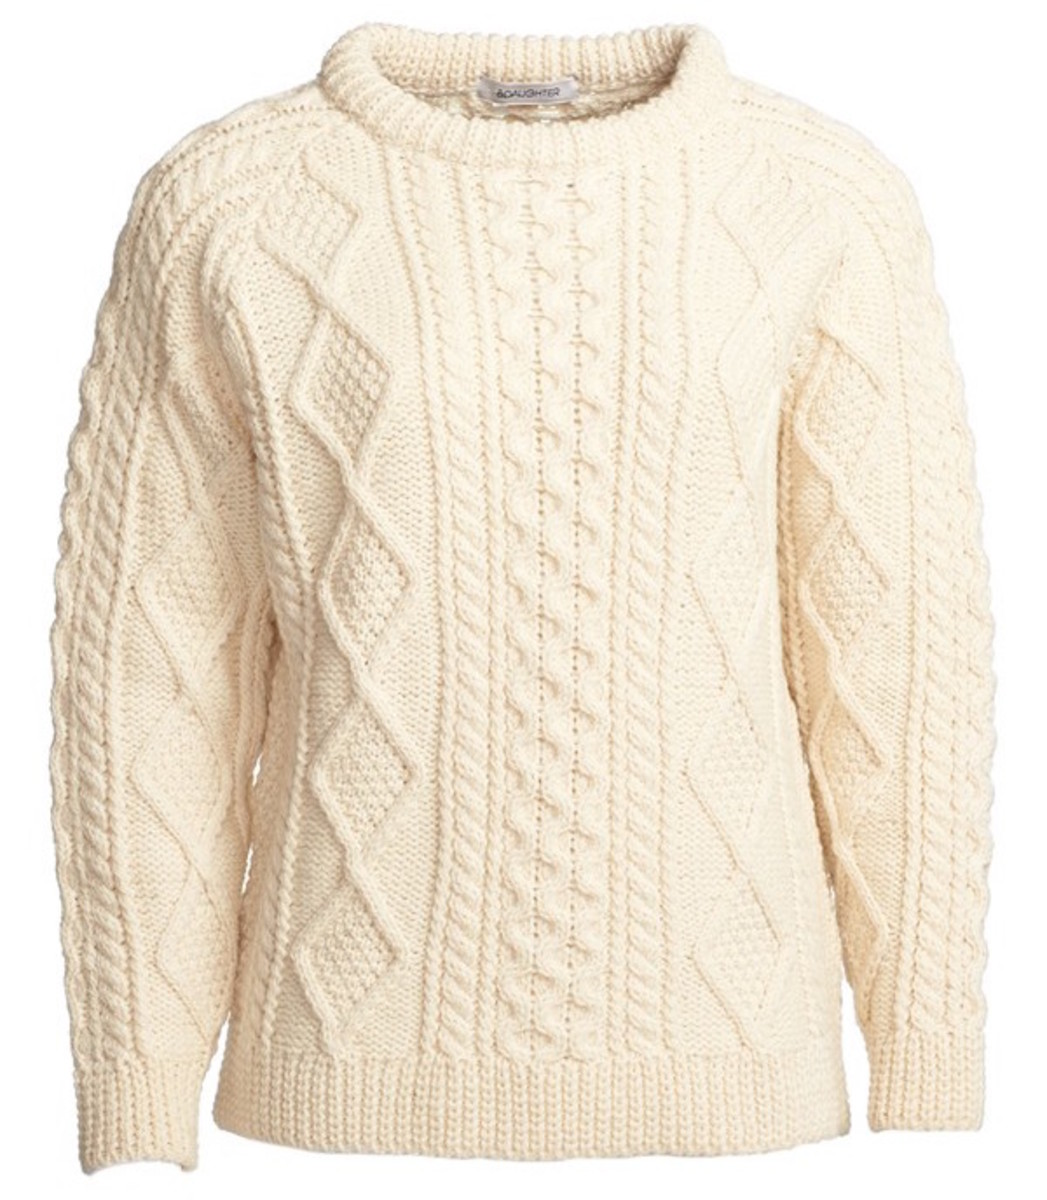 &Daughter Aran knit sweater, $260, available at Nordstrom.